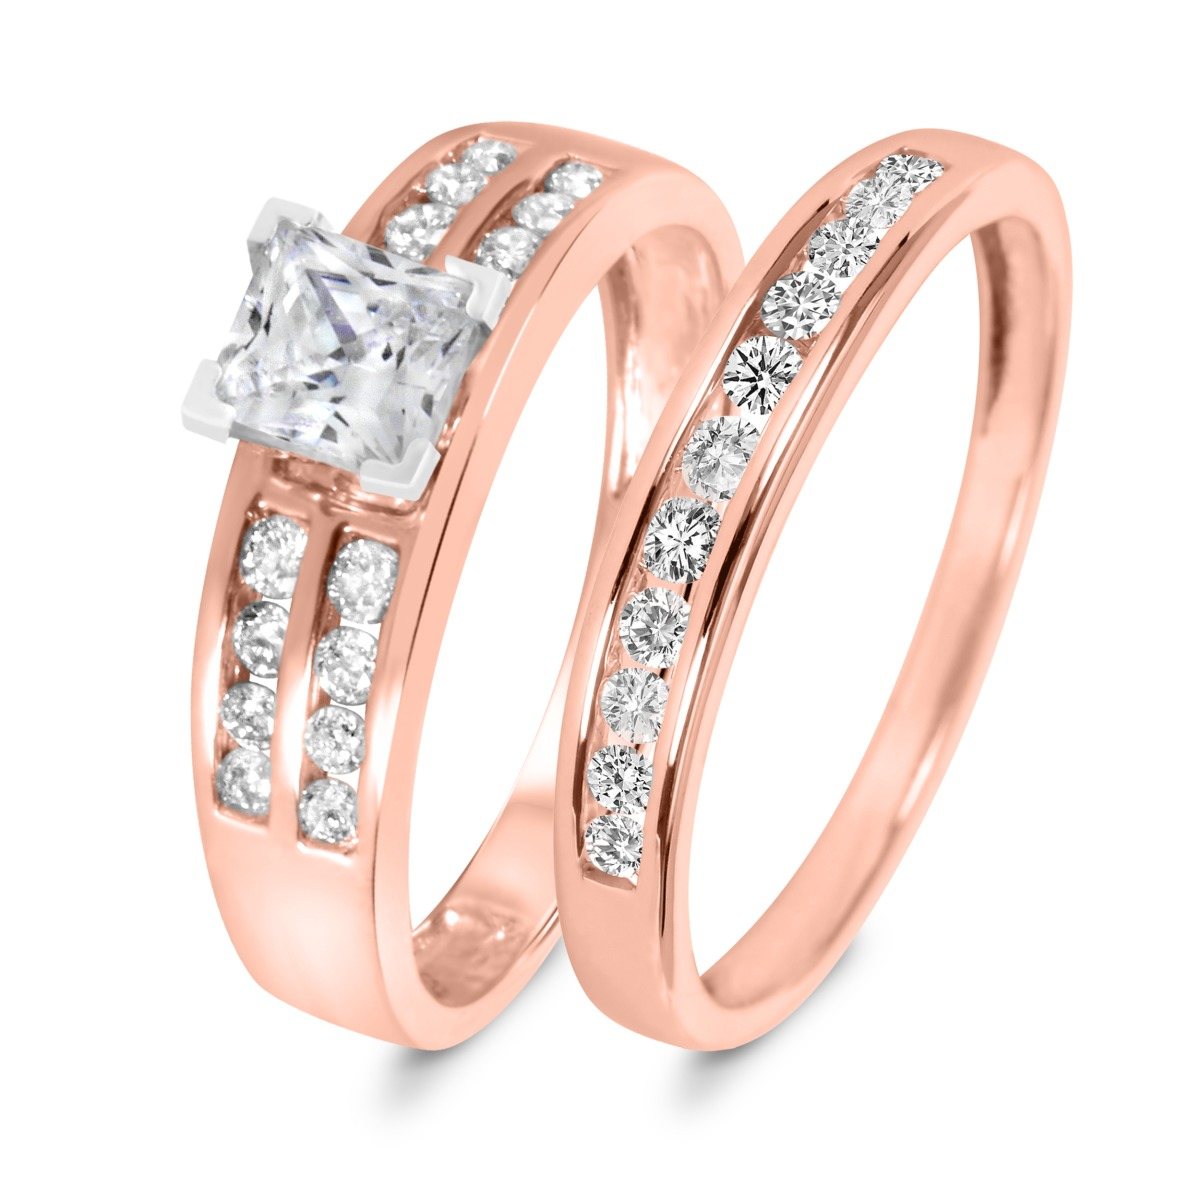 1 1/3 CT. T.W. Diamond Women's Bridal Wedding Ring Set 10K Rose Gold